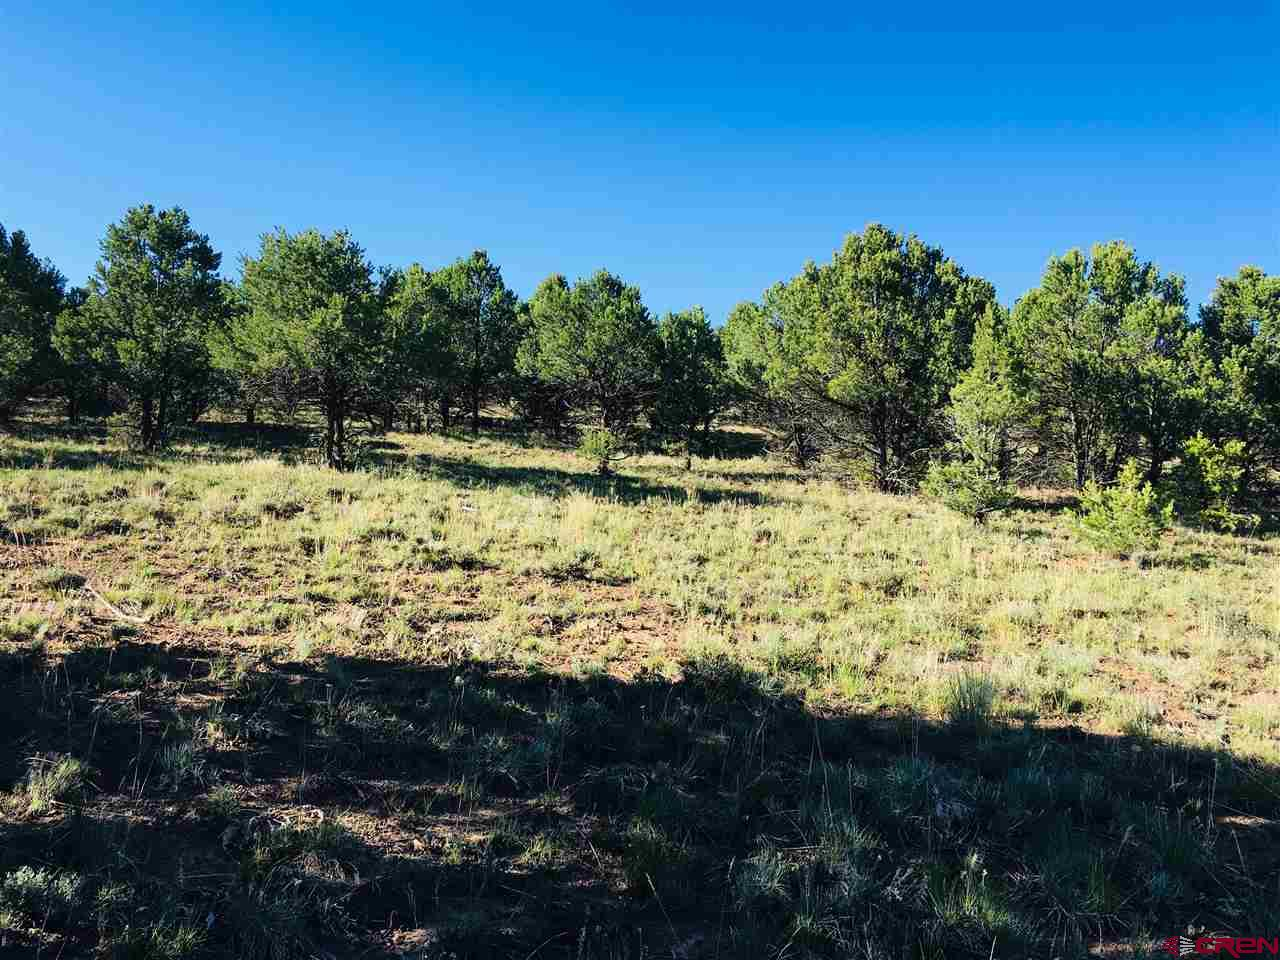 Gorgeous soft sloping lot, which when built upon could provide Cimarron views, mountain views to the North East, and privacy. This lot has a PAID water tap. A $7,000 value. This lot borders a walking trail/open space to the West. The home to the East is already in place.  Nicely populated with Pinion Pines and Juniper, there are a couple of open areas for potential build sights.   Whether you are coming or going from Loghill Village, the subdivision offers some of the most spectacular views in the county. Ponderosa Drive is a well maintained road year round. If golf is your thing, it's just down the road.  Relax into living with an abundance of wildlife, walking trails, biking options, or a quiet moment at home.  Is this lot looking for you? Please stop by and check it out.   Please note: The subject photo was taken standing low - in the doorway of a car to show potential views.